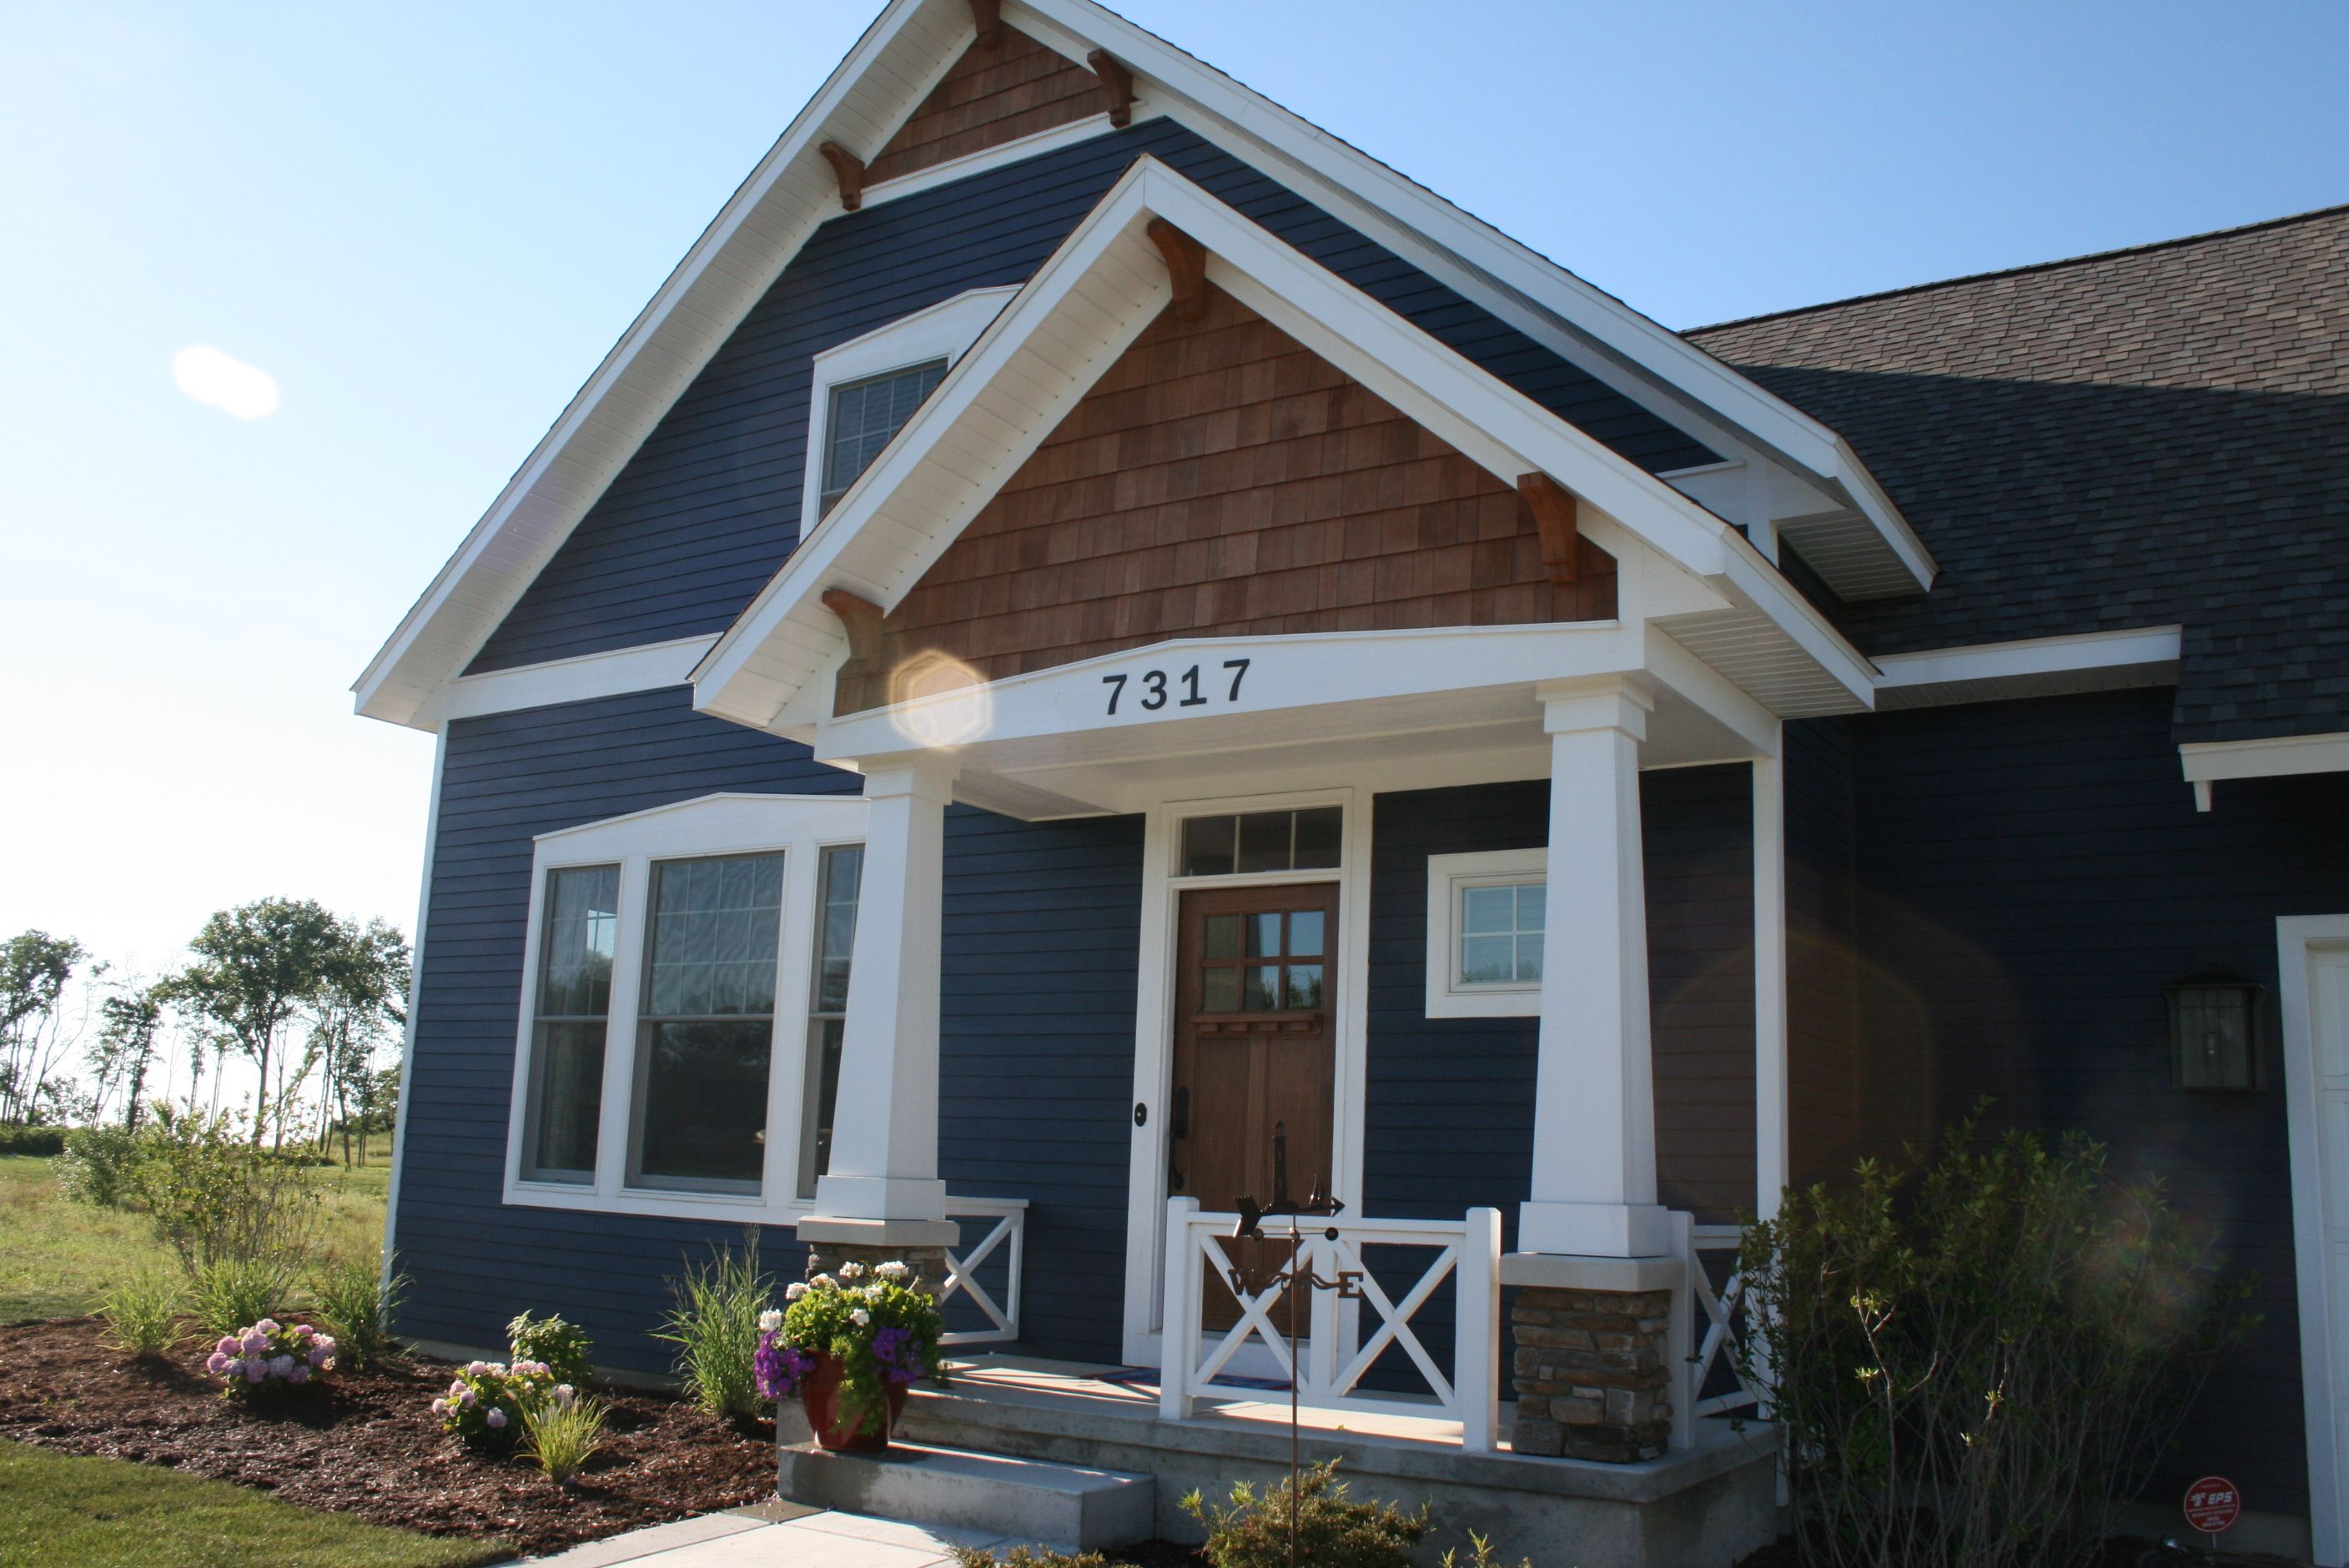 Beach House Craftsman Style Porch Hardie Board Painted Sherwin Williams Naval Dream Home